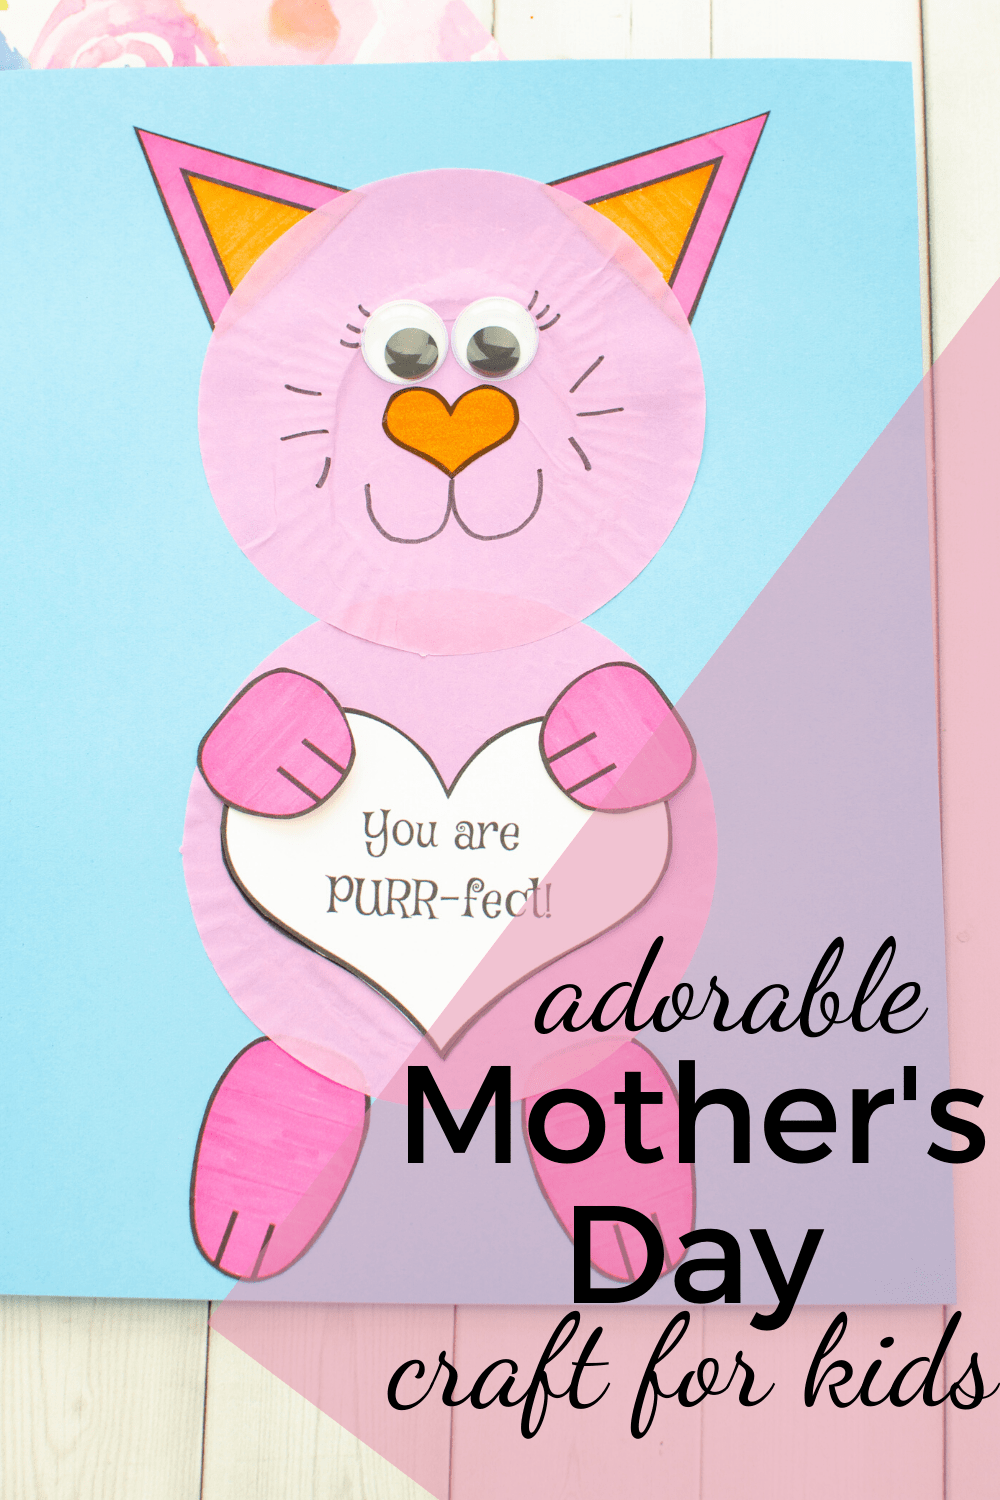 Moms will adore this cupcake liner Mother's Day craft for preschool kiddos to make. The free printable template makes it so easy to create!